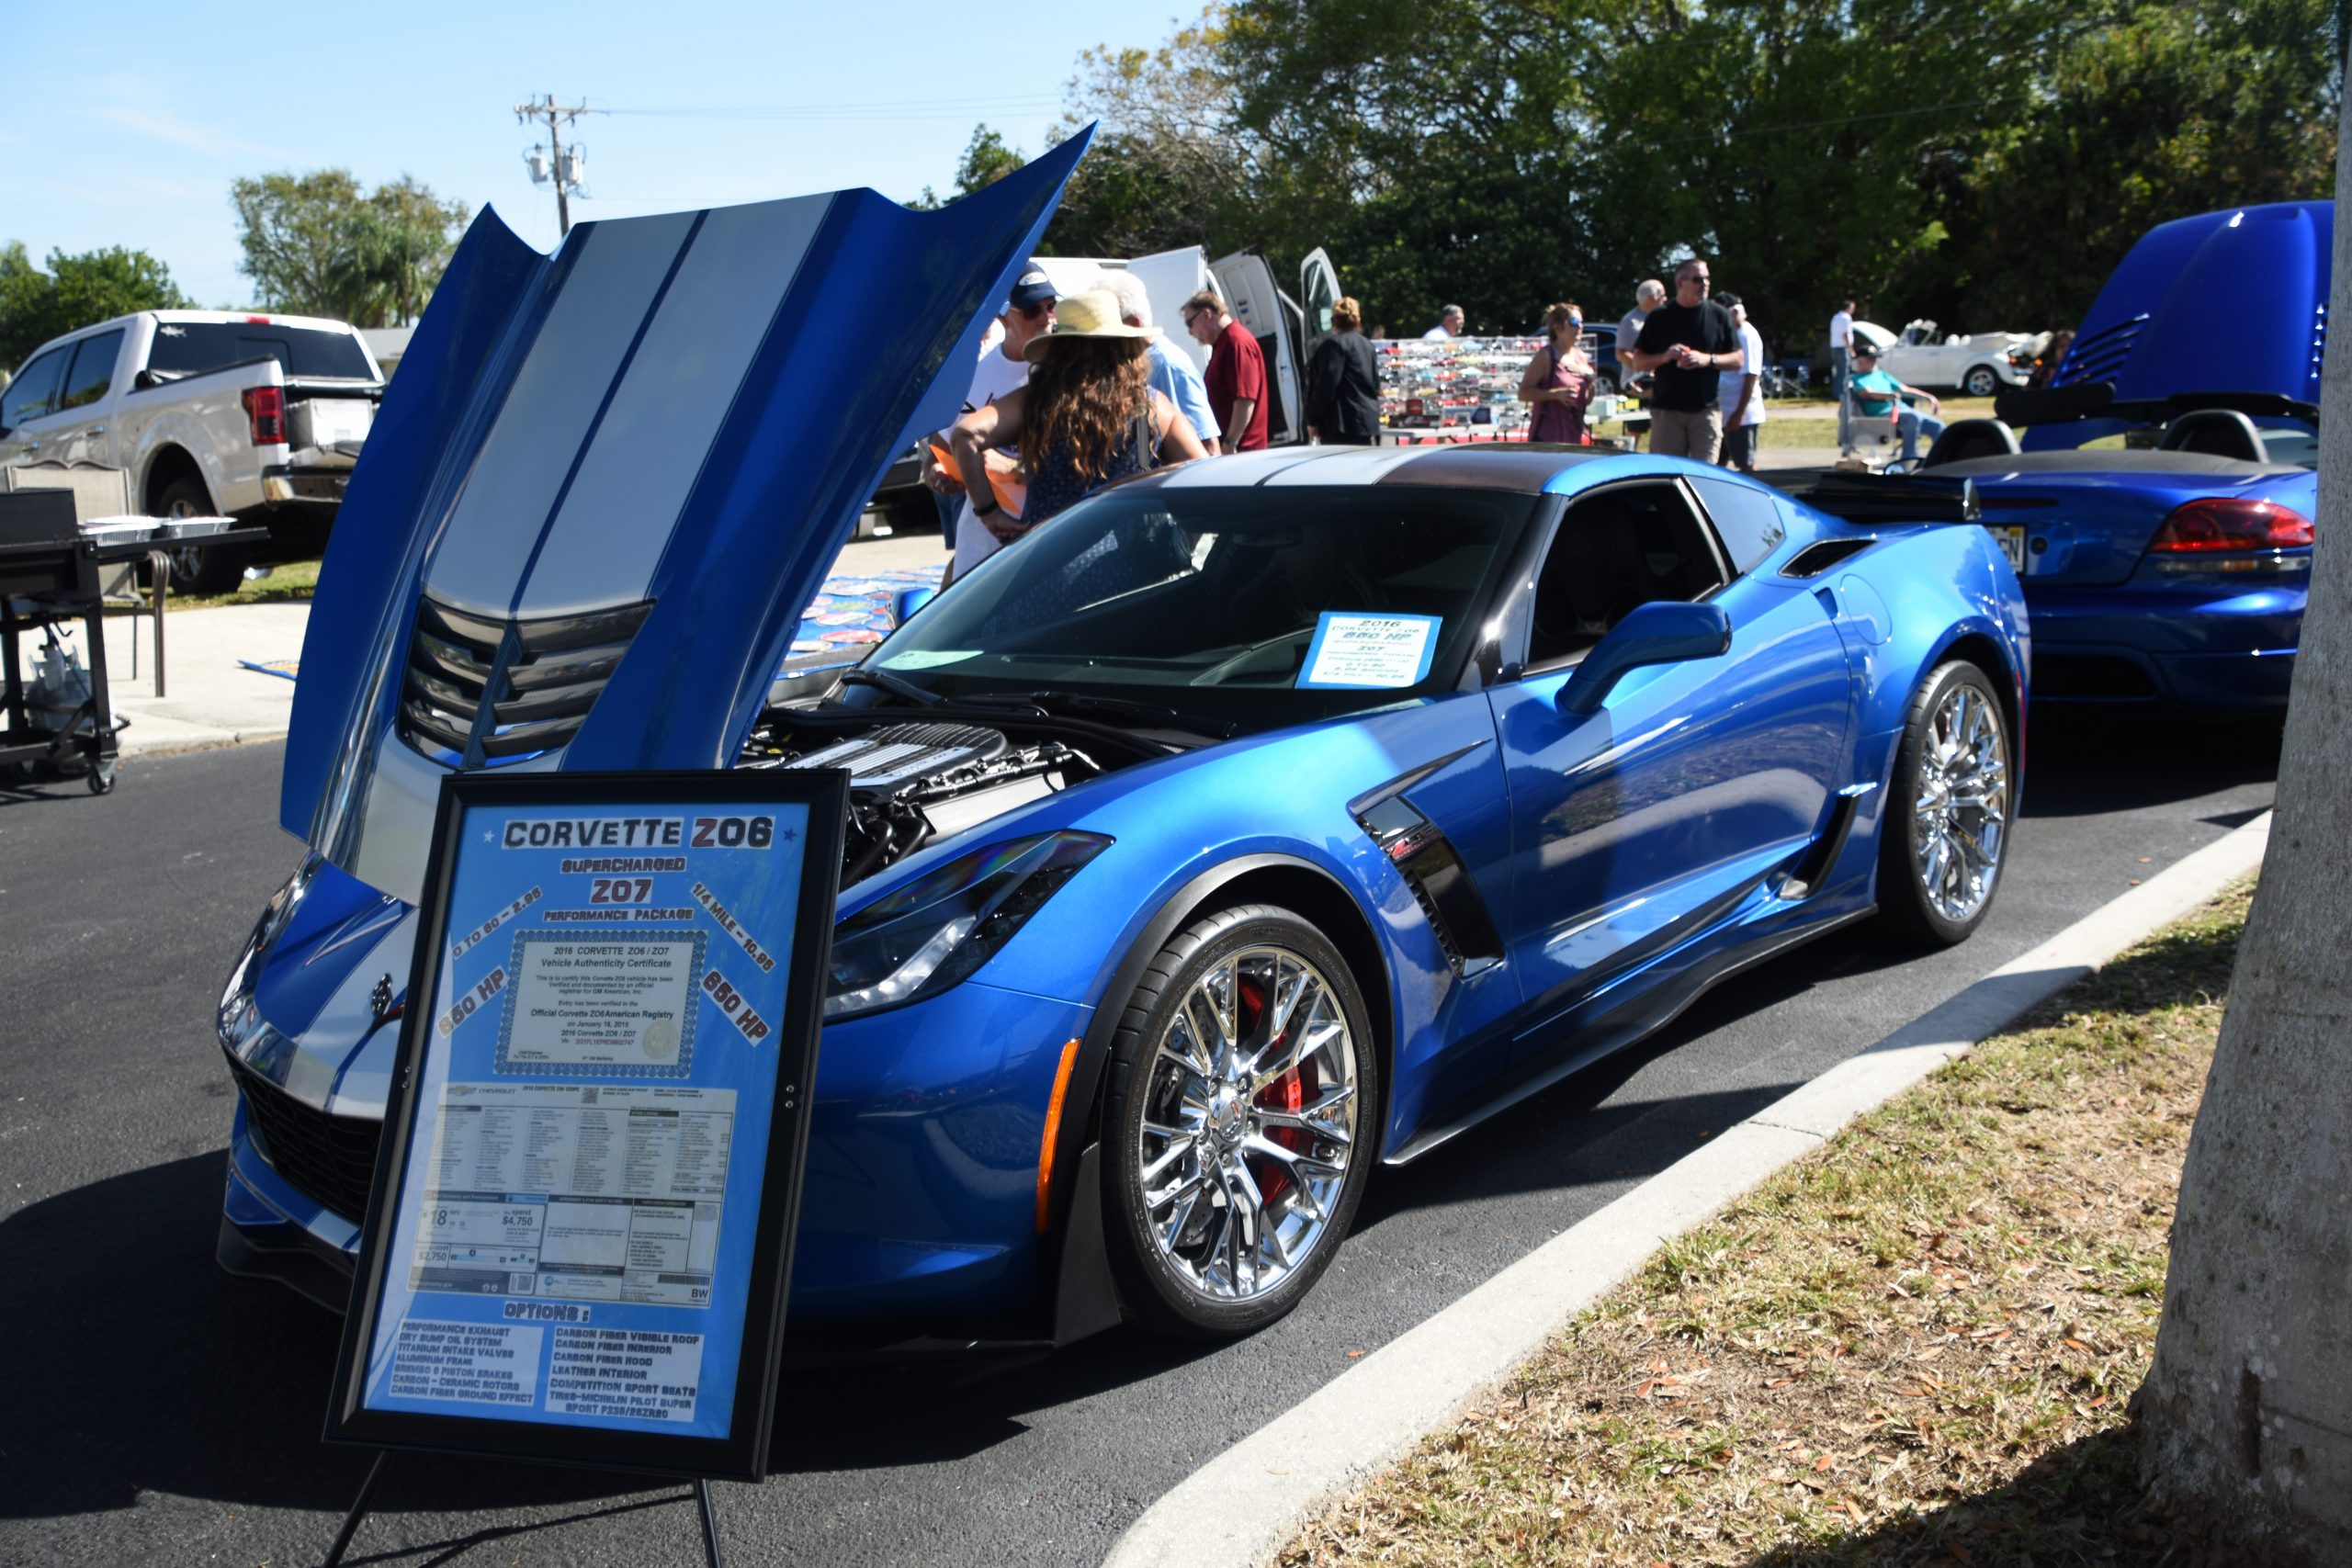 Blue Corvette with hood up